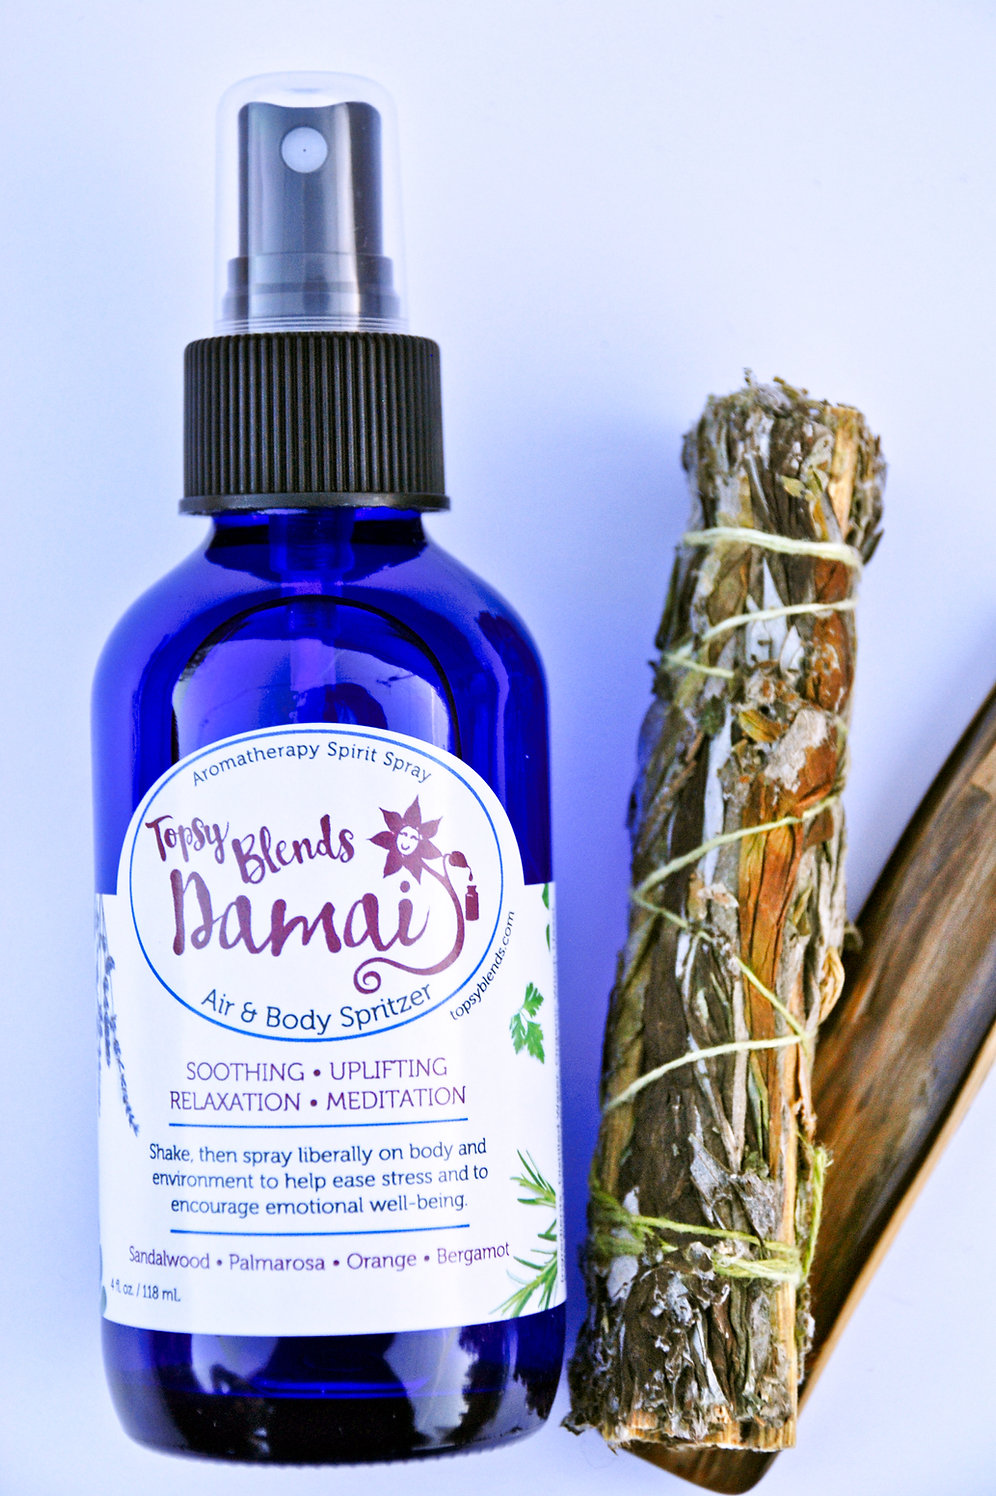 Damai - Soothing Relaxation and Meditation Spray